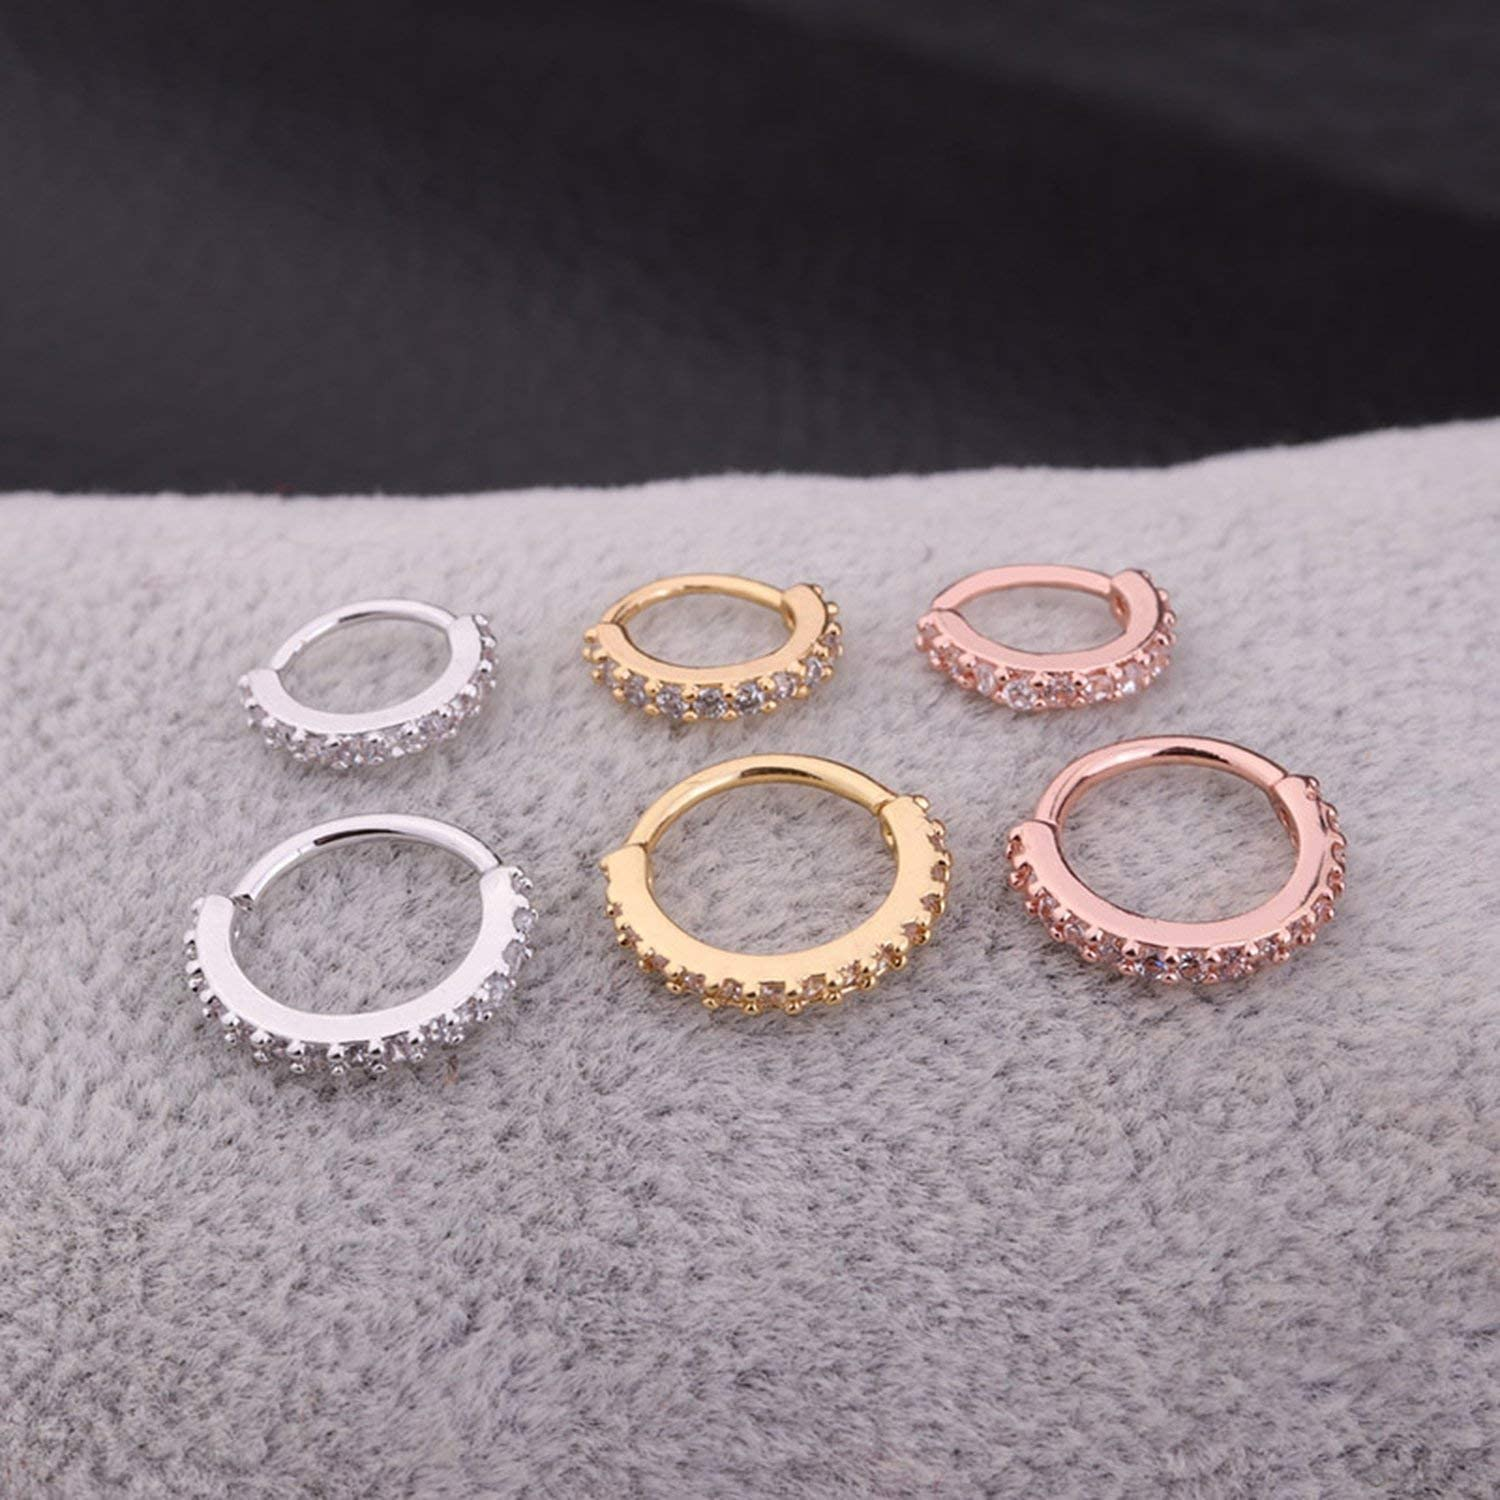 Nose Stud 1Pc Nose Hoop Helix Cartilage Earring,8Mm,Silver